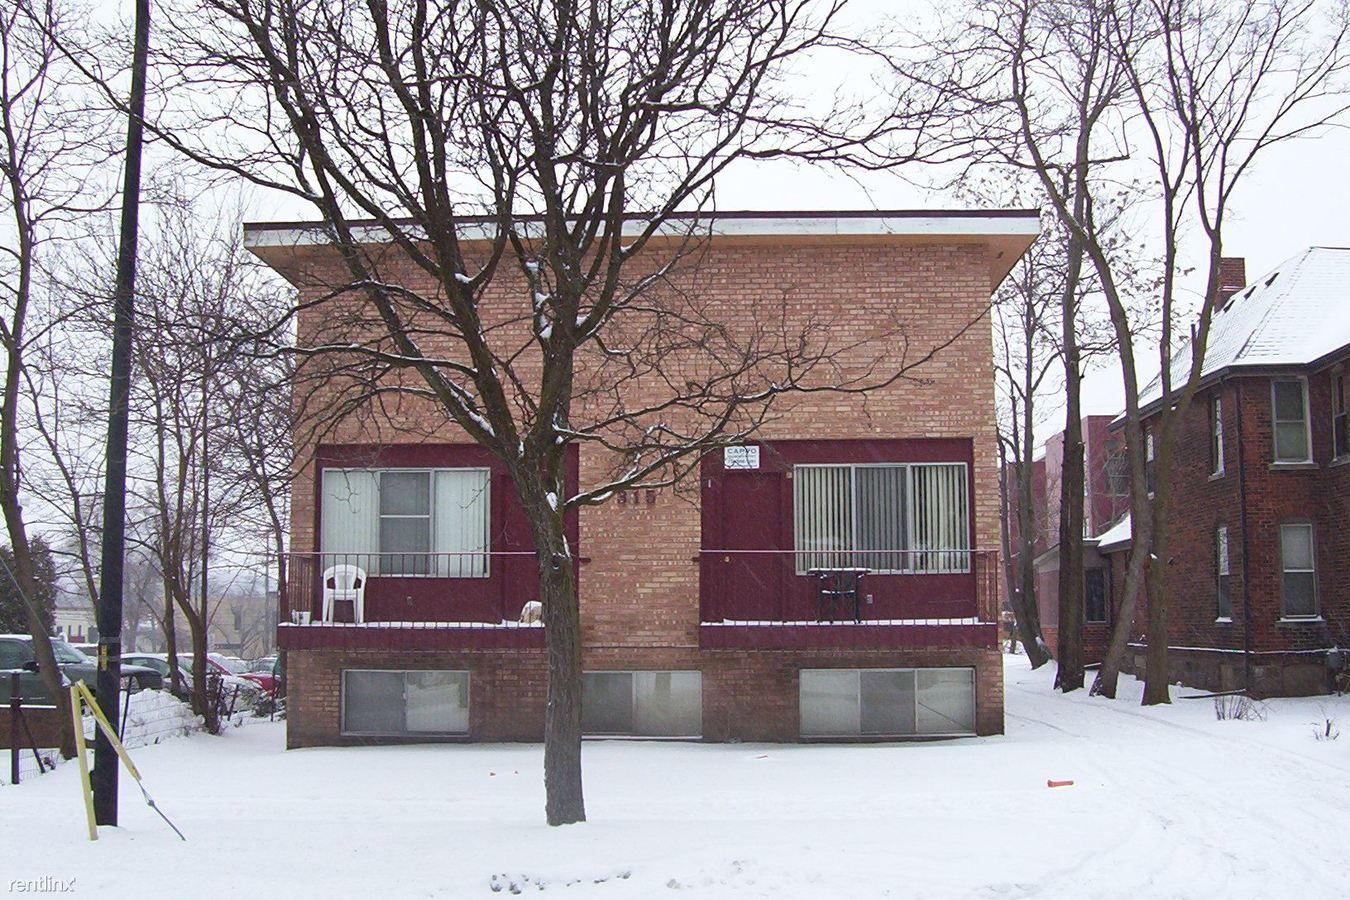 2 Bedrooms 1 Bathroom Apartment for rent at 315 Catherine St in Ann Arbor, MI